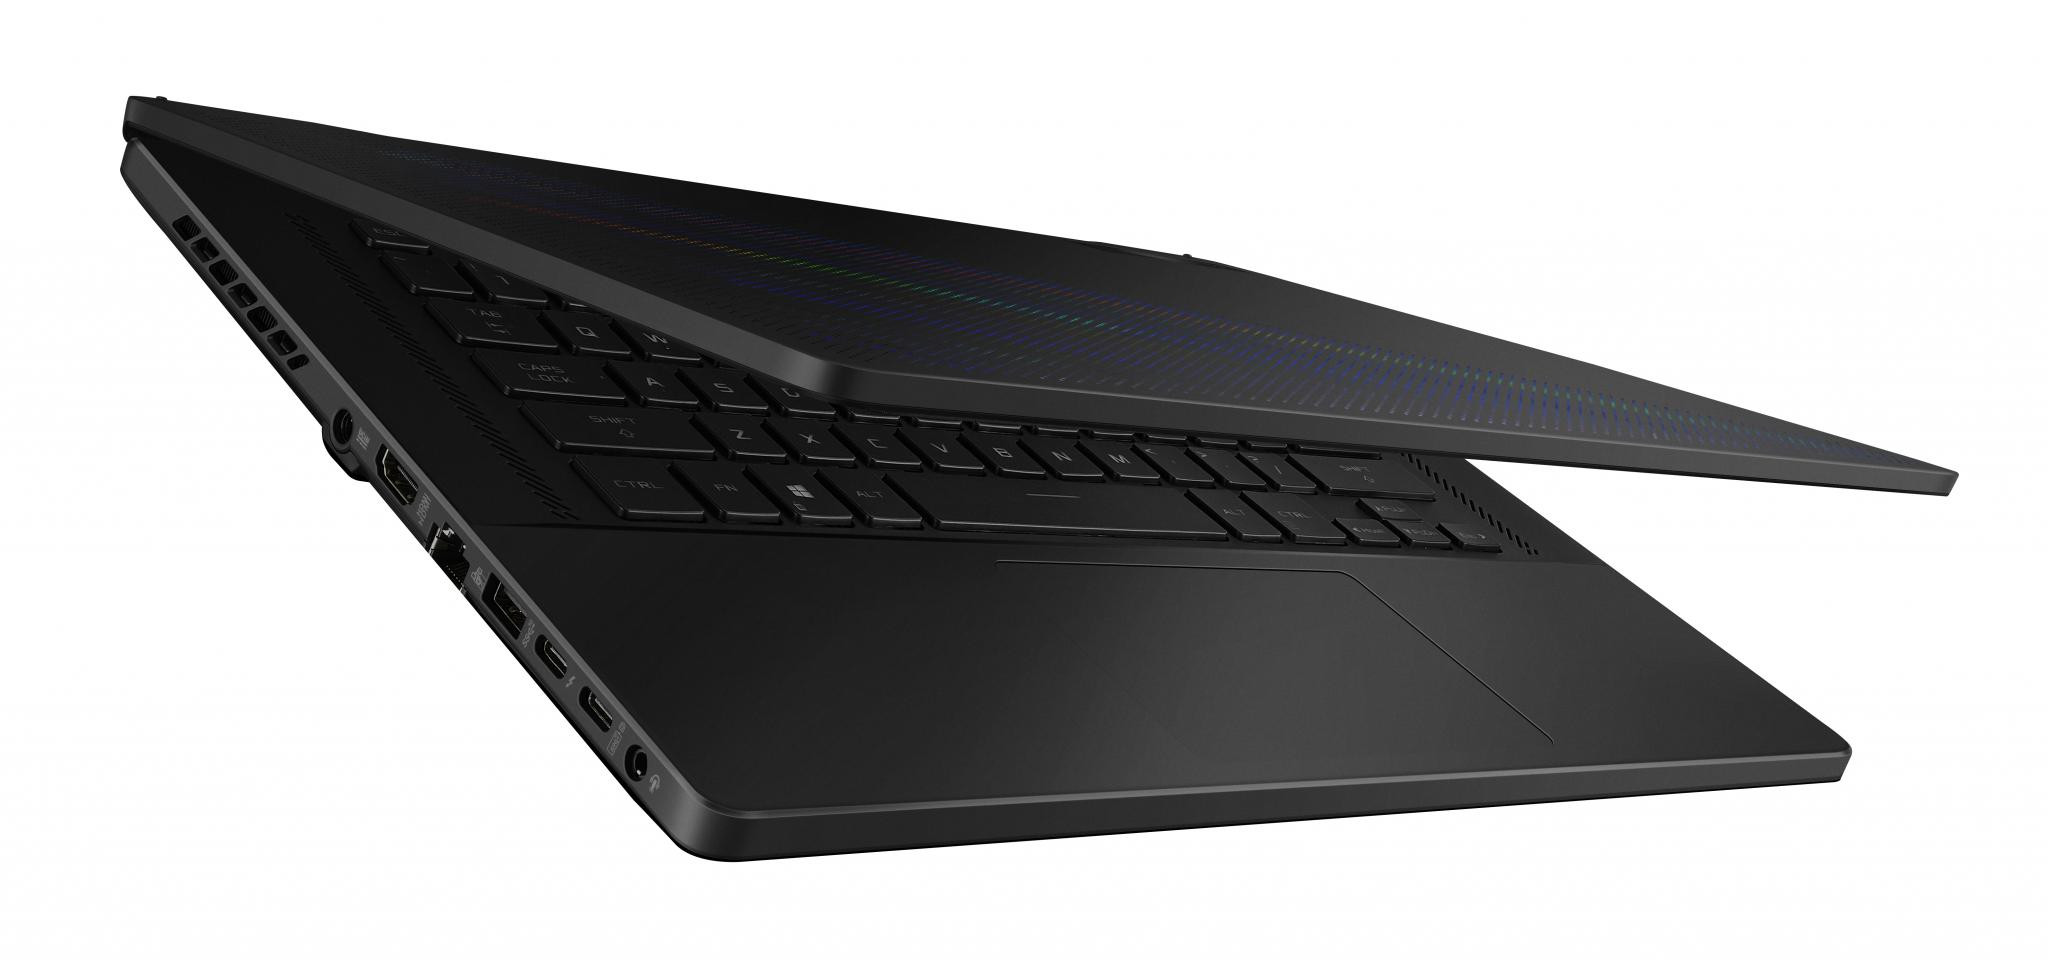 Laptop Gaming ASUS ROG Zephyrus M16 GU603HR-K8005T, 16-inch, WQXGA (2560 x 1600) 16:10, Anti-glare display, IPS-level Panel, Intel® Core™ i7-11800HProcessor2.3GHz(24MCache,upto4.6GHz,8Cores), NVIDIA®GeForceRTX™3070 Laptop GPU, With ROG Boost up to 1390MHz at 80W (100W with Dynamic - imaginea 5